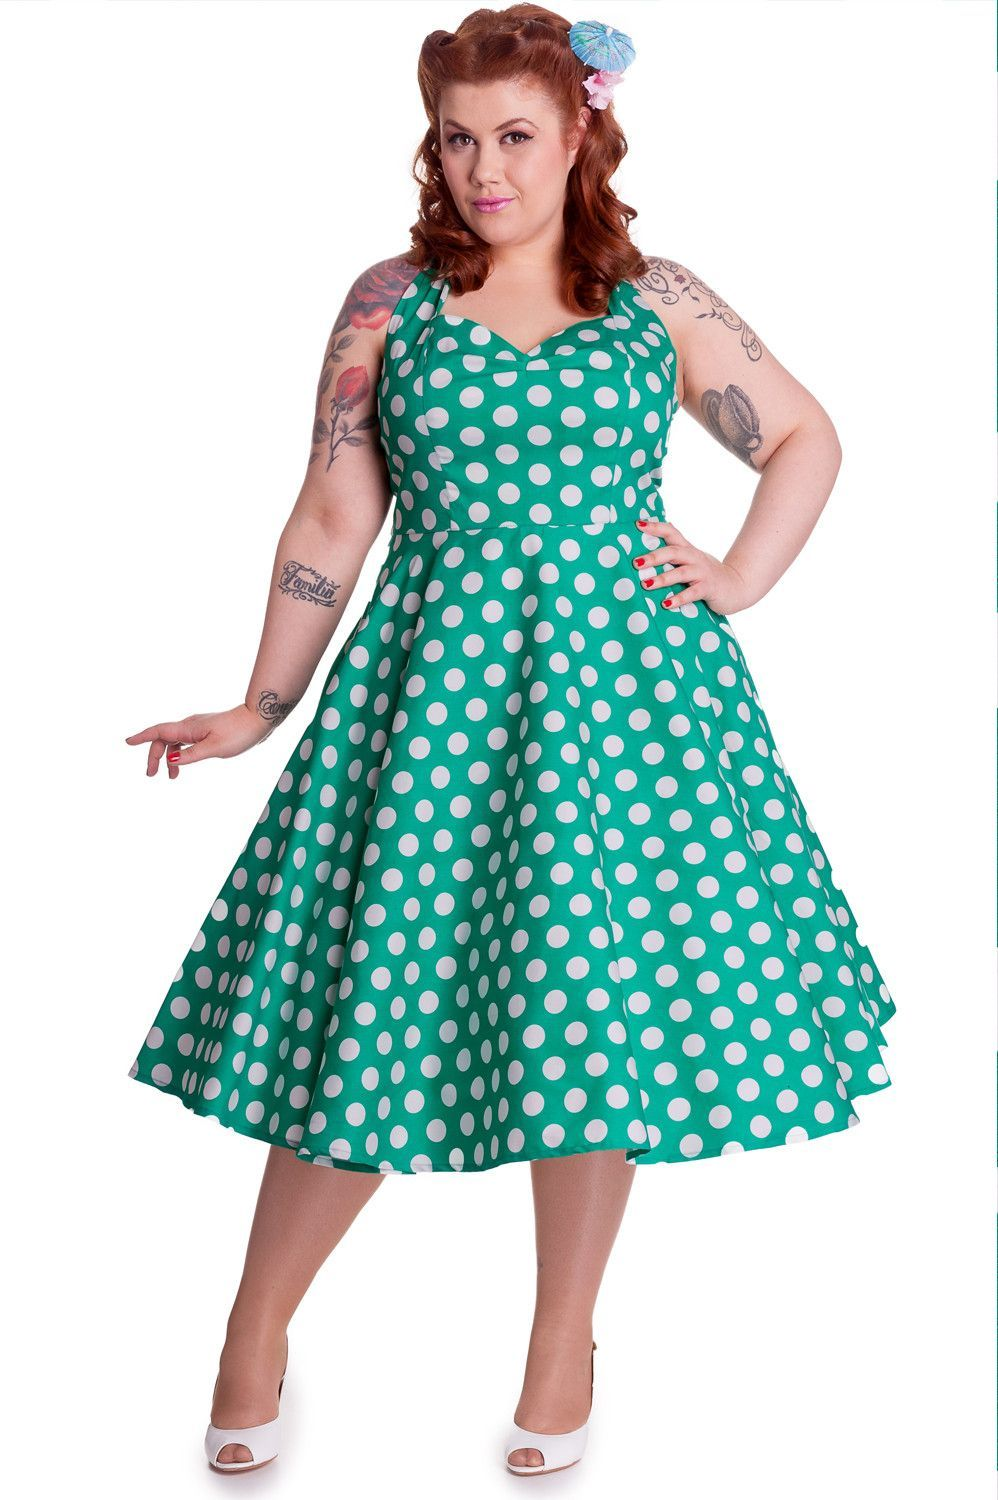 Amazing and gorgeous 60 s style Polka Dot swing dress from Hell Bunny. It  is superb quality vintage style dress and perfect for parties 58477bae96f5